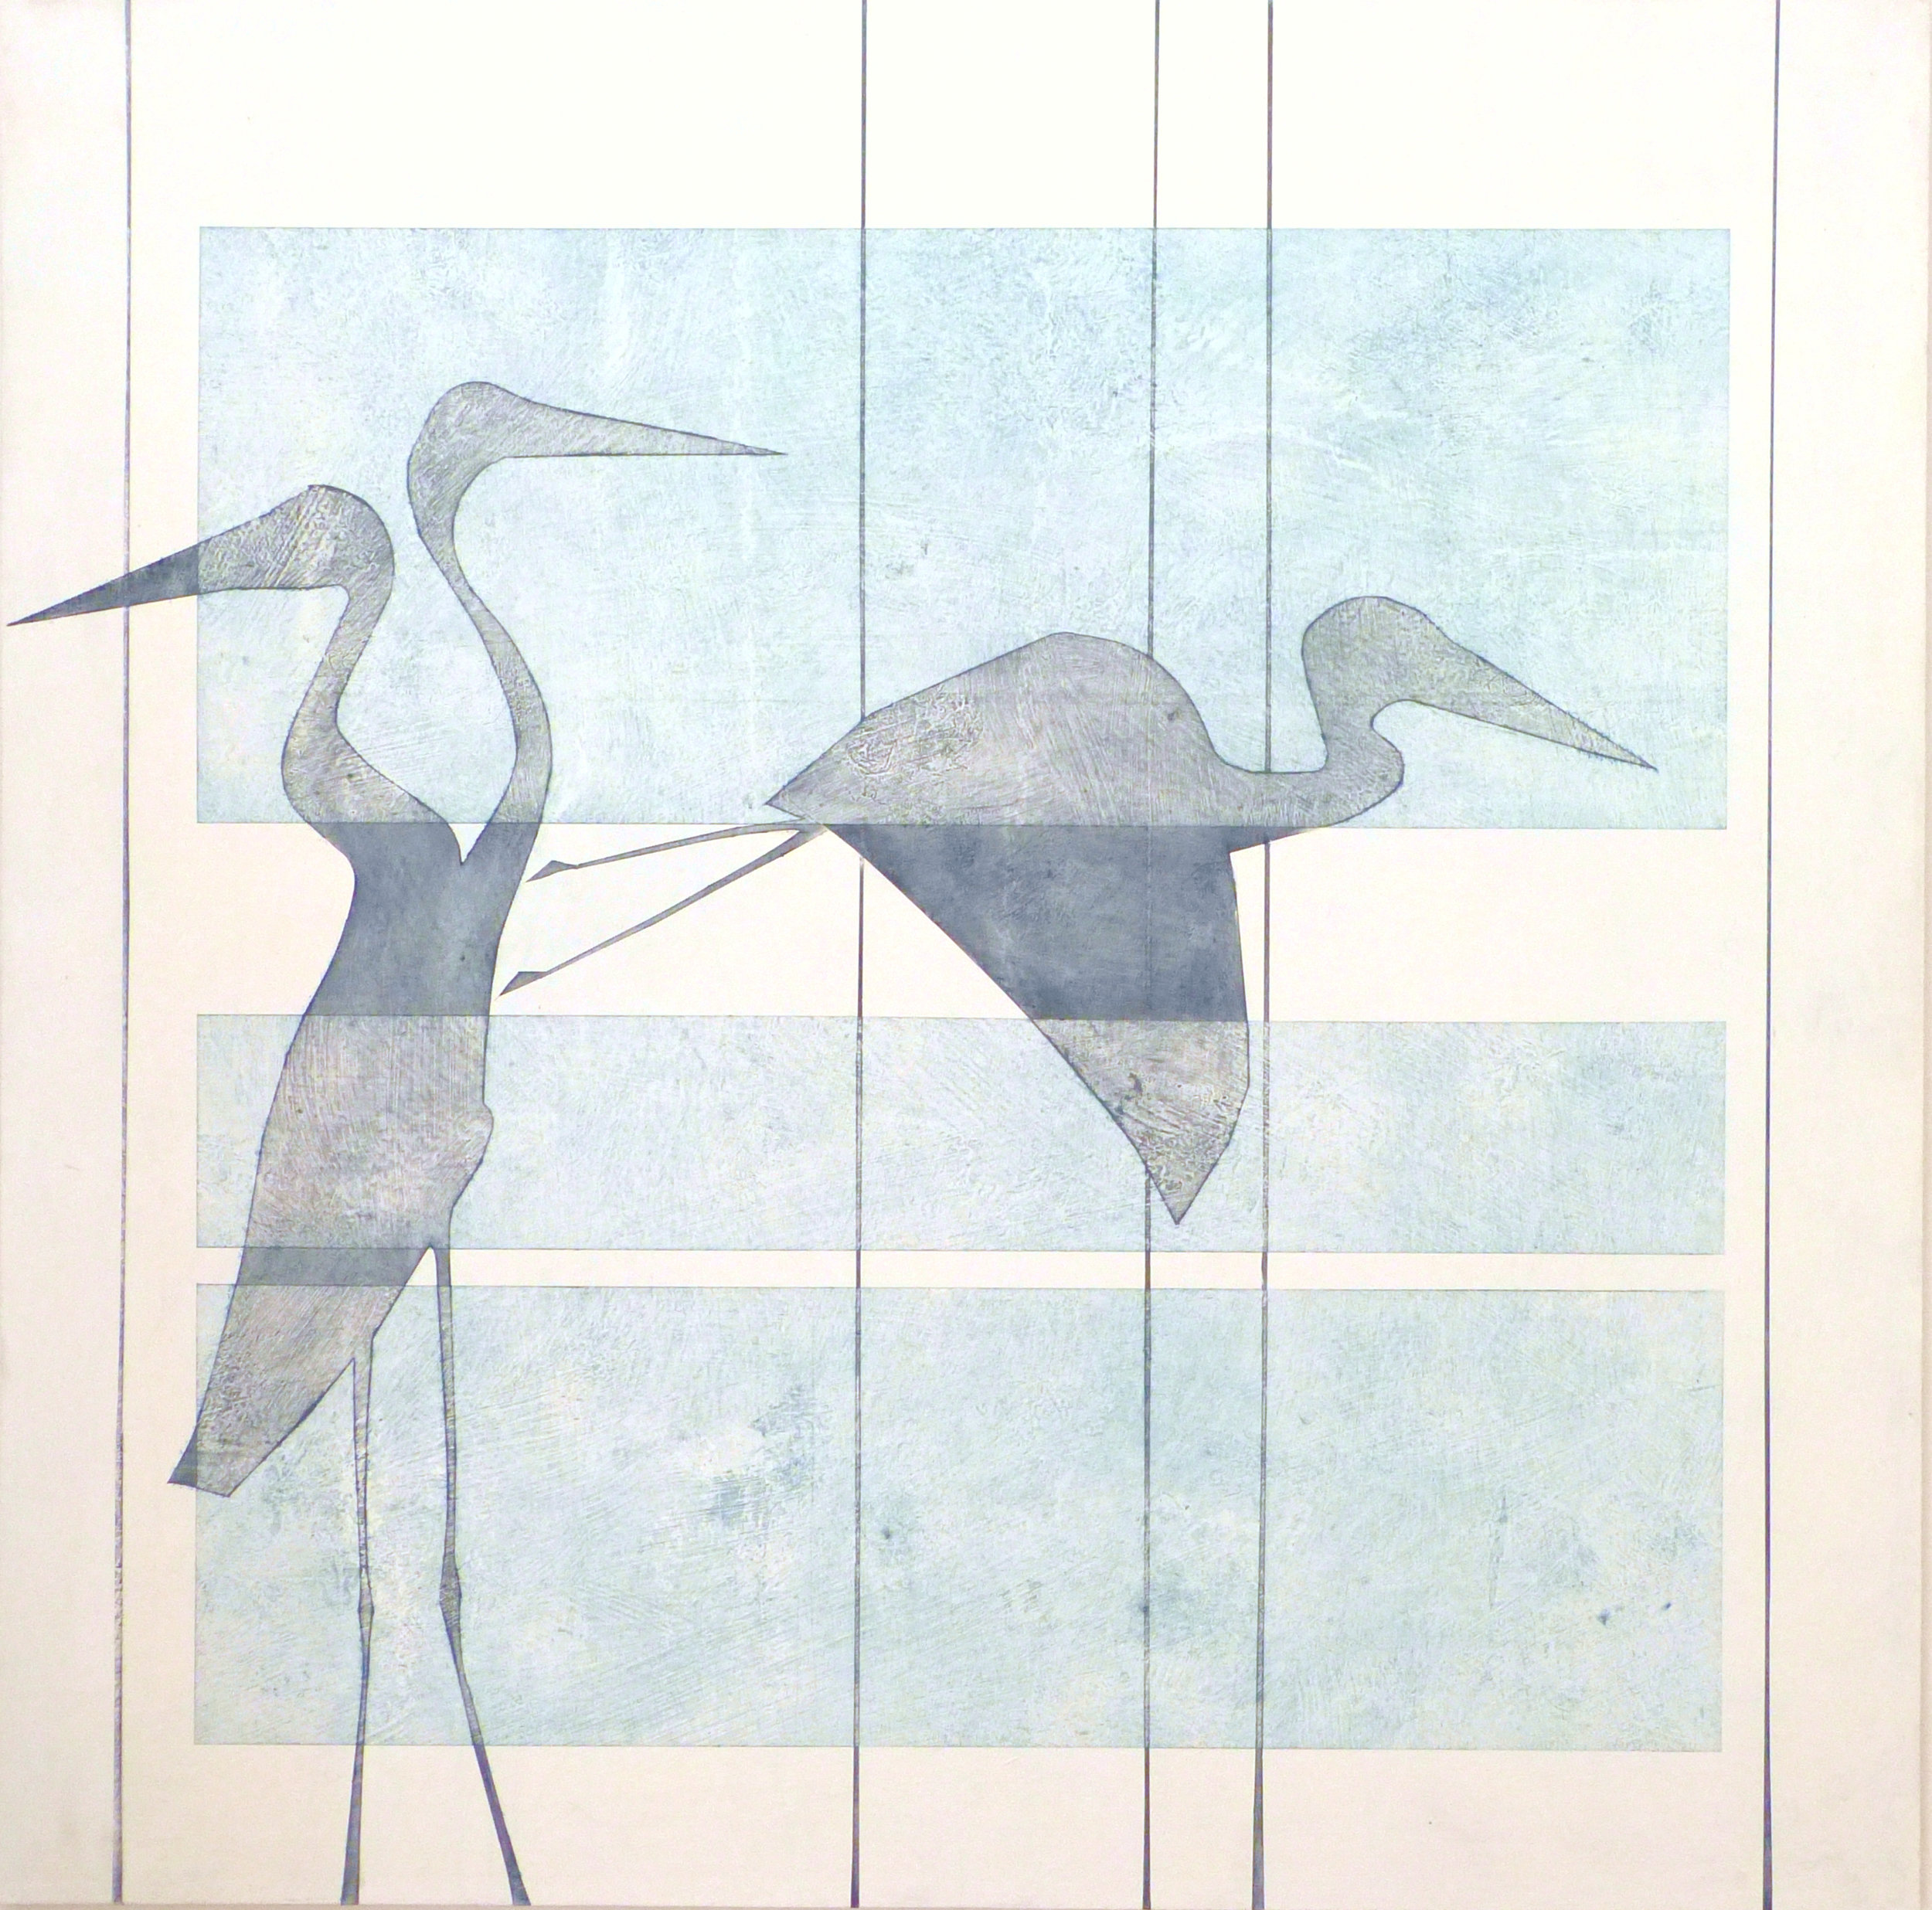 THE HERON CLAN - They make home on the Great RiverVigilant, attentive, intelligentStillnessA lesson in self reflectionEcological care-takersThey only take what they needBeautiful and magnificent in natureGeneration after generation after generation